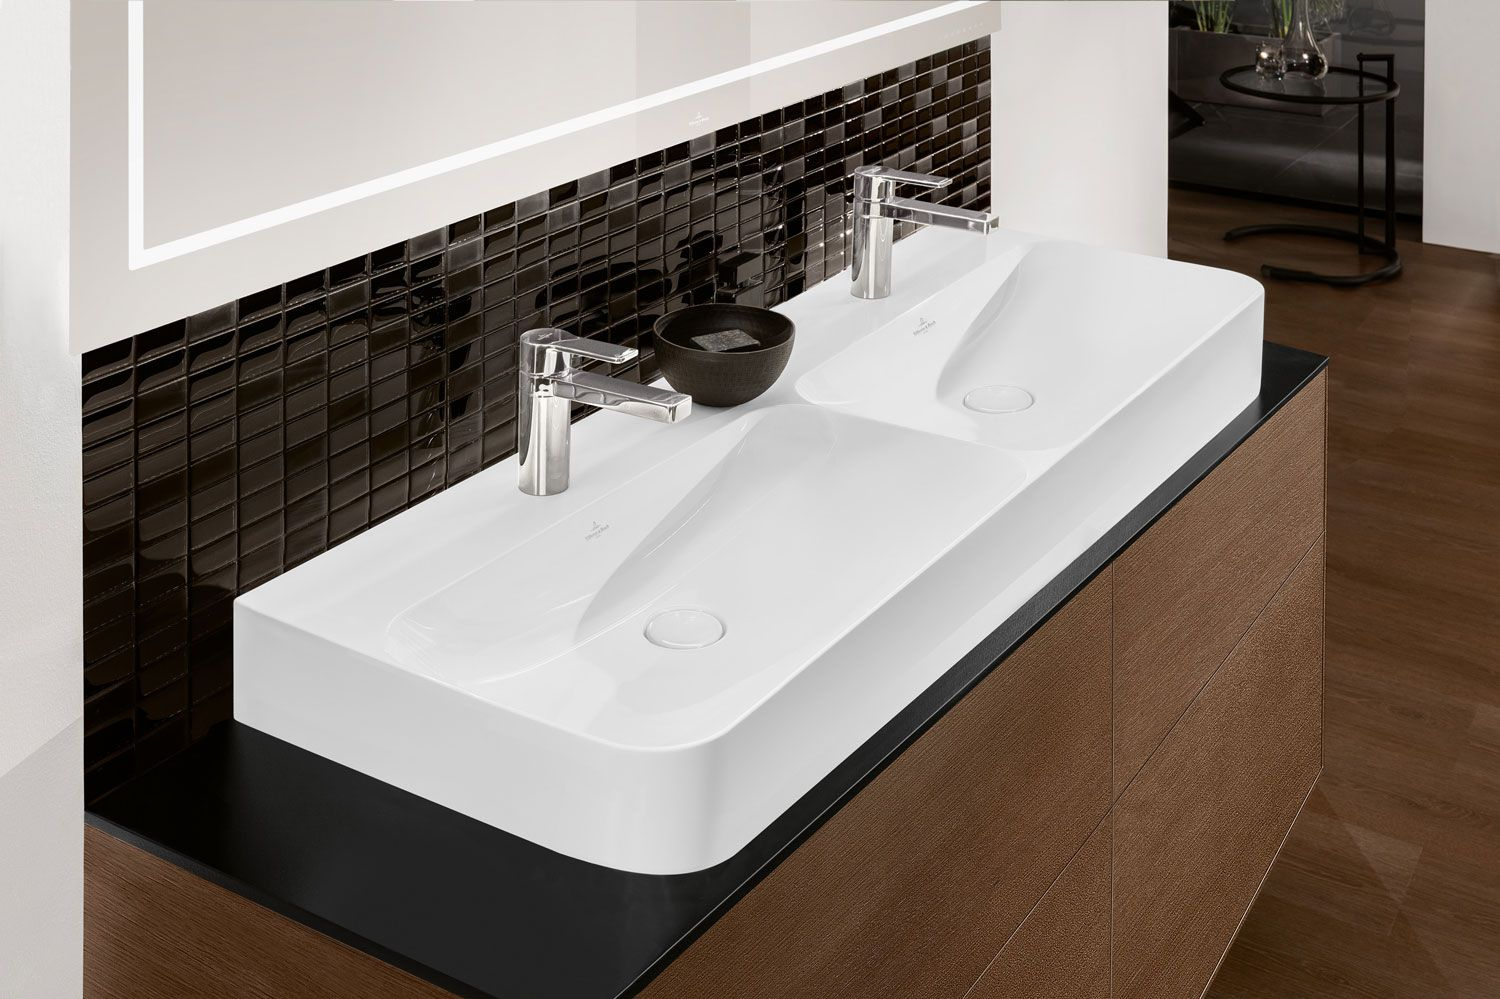 Relativ Double washbasin from the Finion Collection by Villeroy & Boch  OQ89